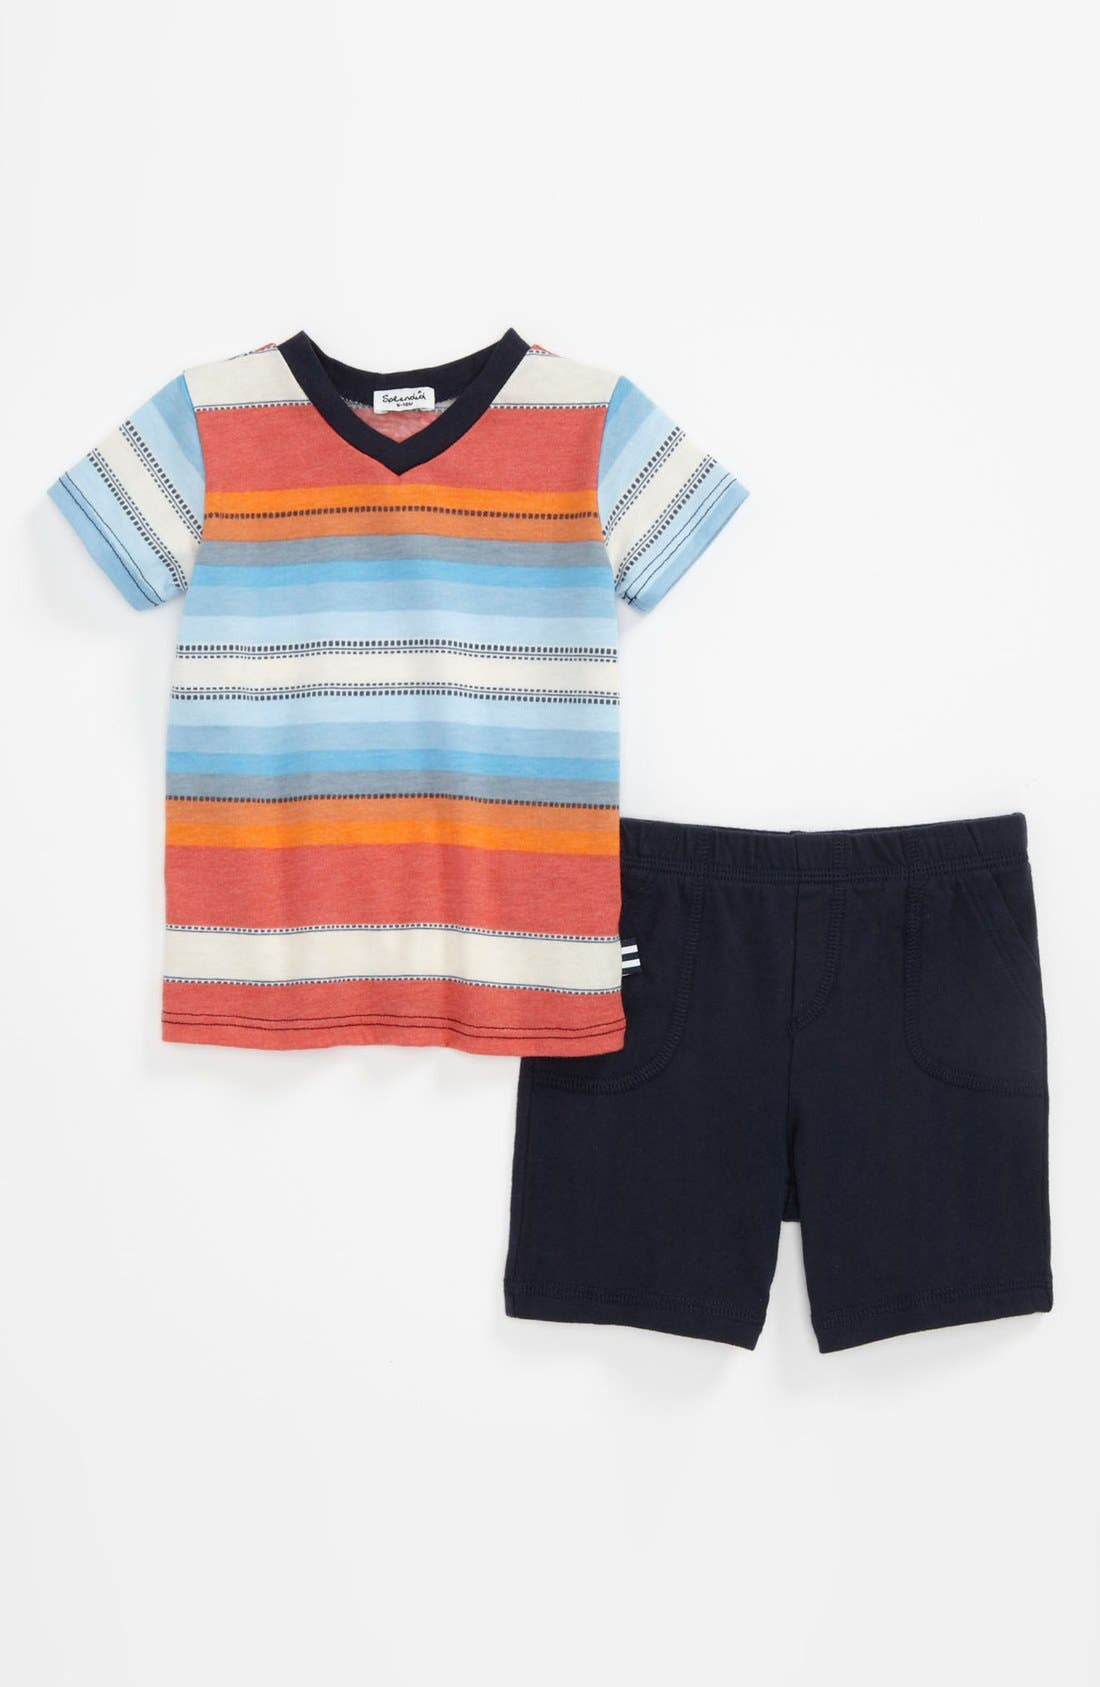 Alternate Image 1 Selected - Splendid V-Neck T-Shirt & Shorts (Baby)